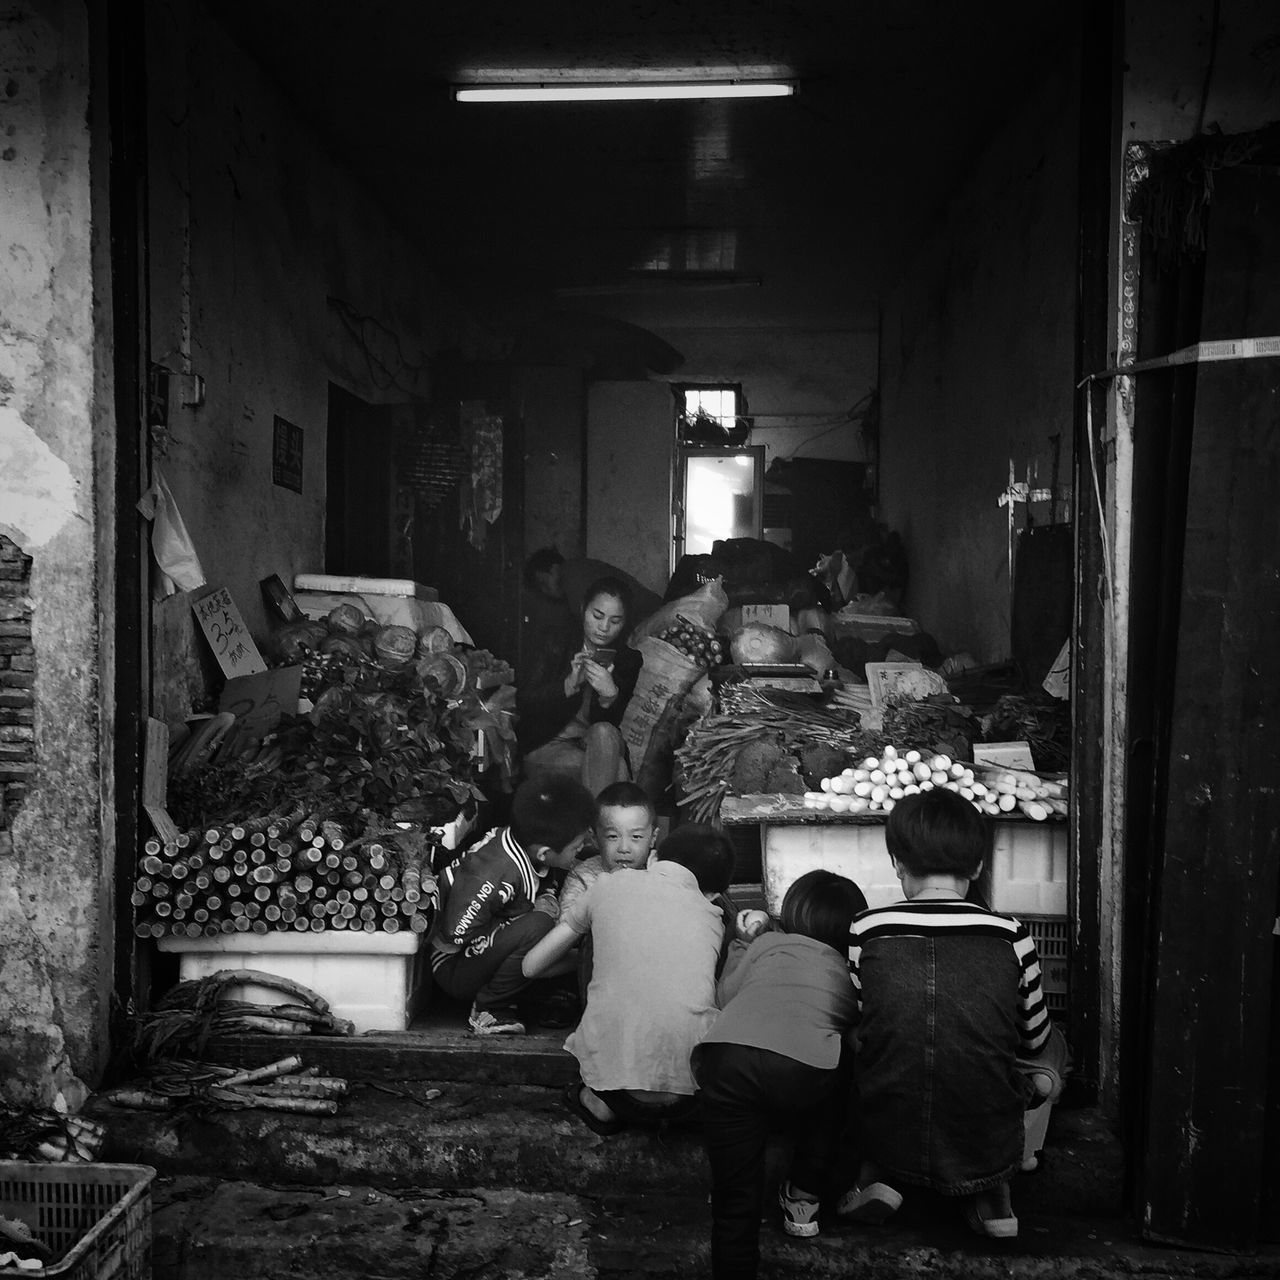 Real People Sitting Lifestyles Large Group Of People Crowd Daily Life Still Life Taking Photos My Black & White Photography EyeEm Taiwan Bnw Street Photography Street Photo Blackandwhite Eye4photography  Childhood Children Kids EyeEm Gallery Togetherness Happy